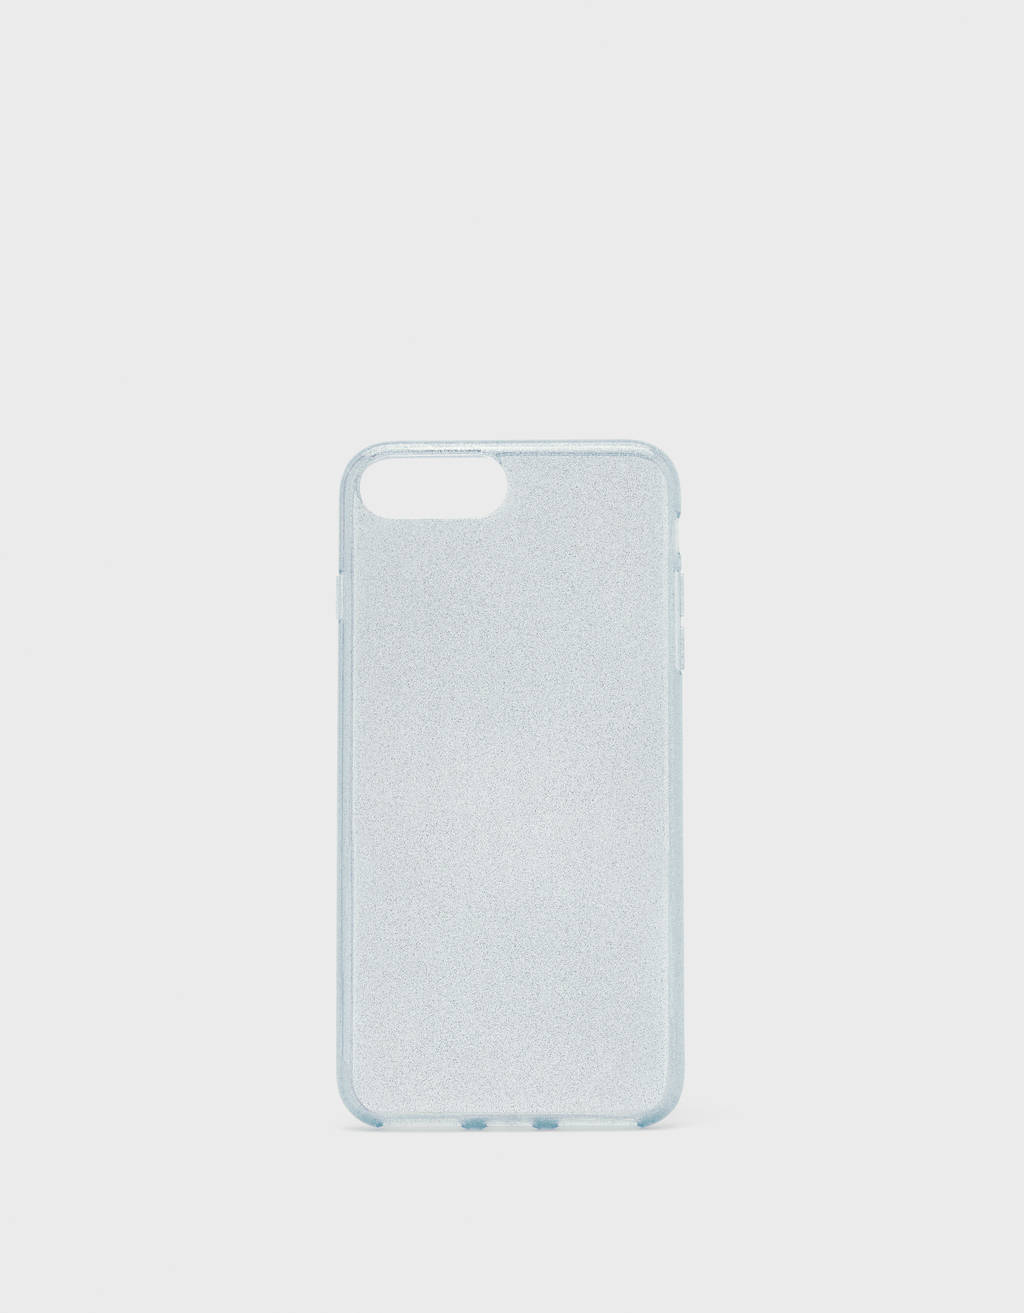 Carcasa con purpurina iPhone 6 plus / 7 plus / 8 plus